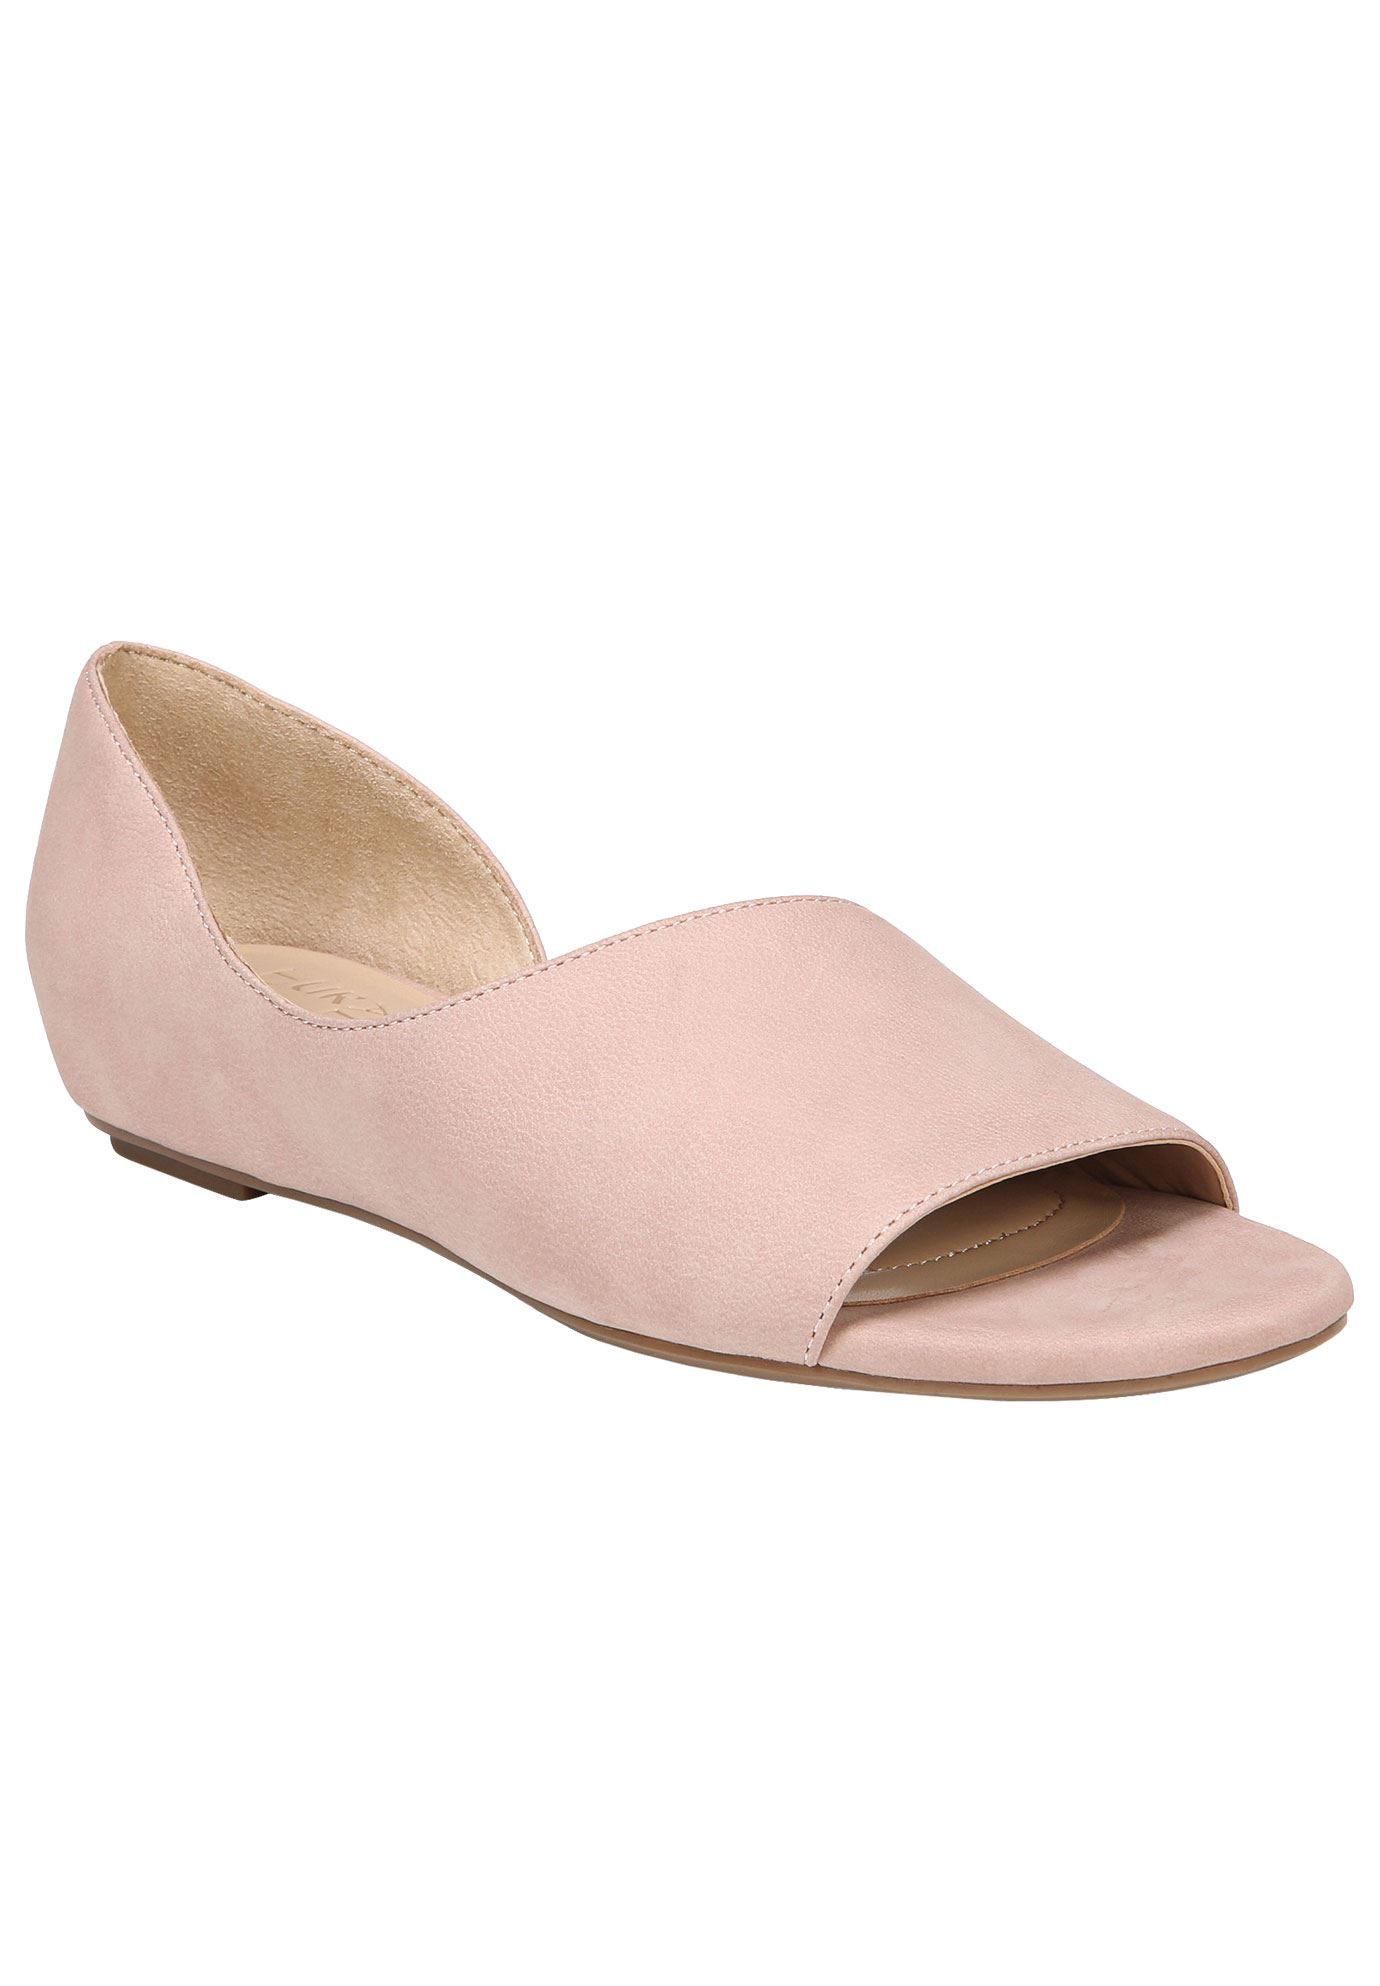 Lucie Flats by Naturalizer®,